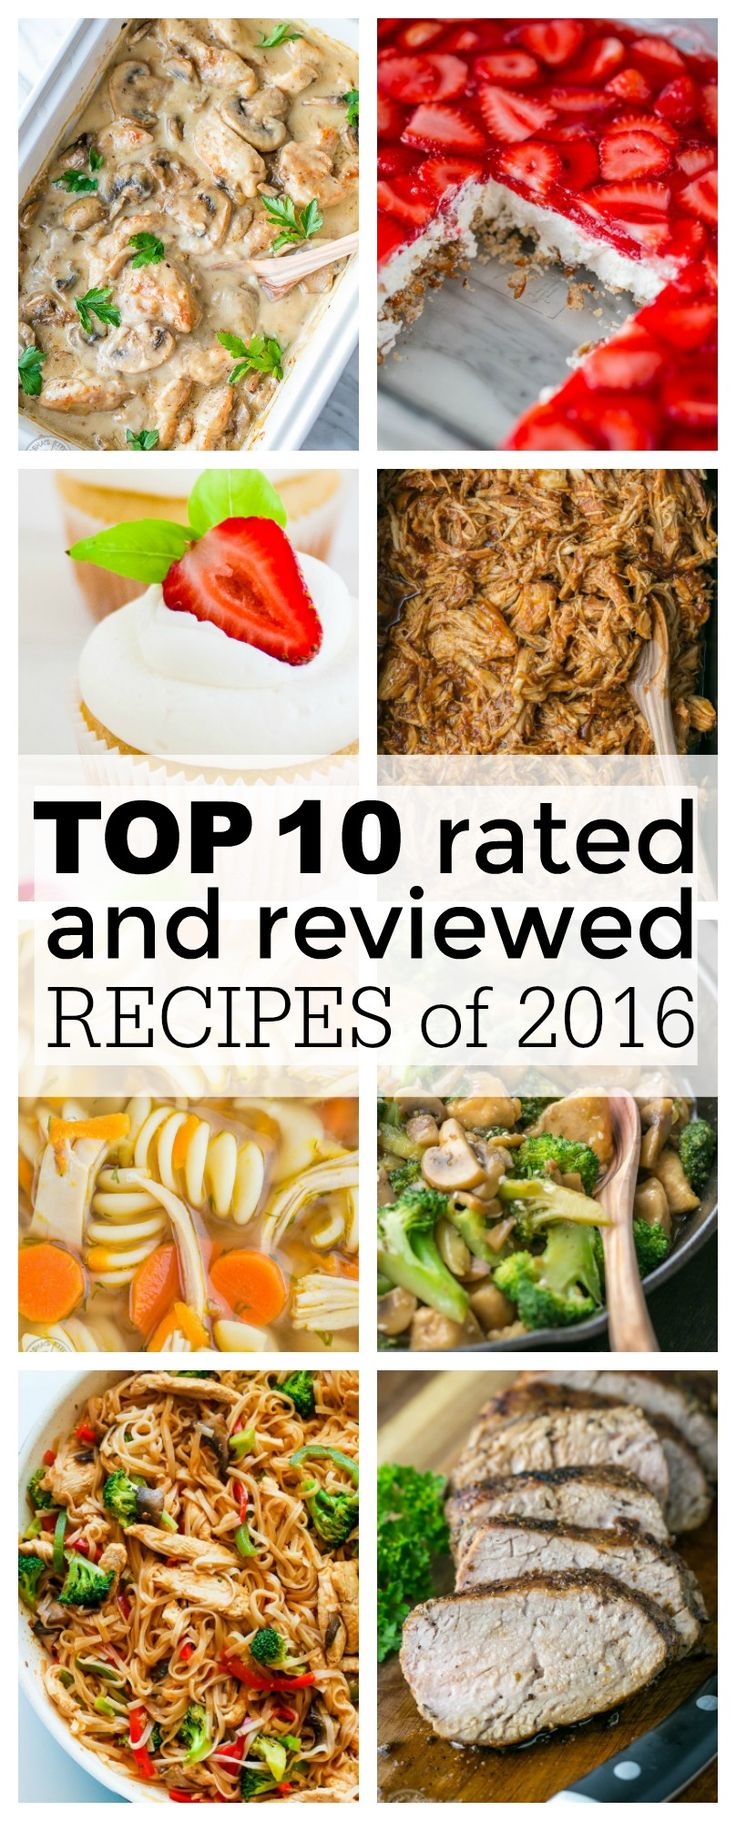 Top 10 Recipes of 2016. Fail proof, best recipes you'll make over and over! That's exactly what this is - most popular, best reviewed, reader favorites!